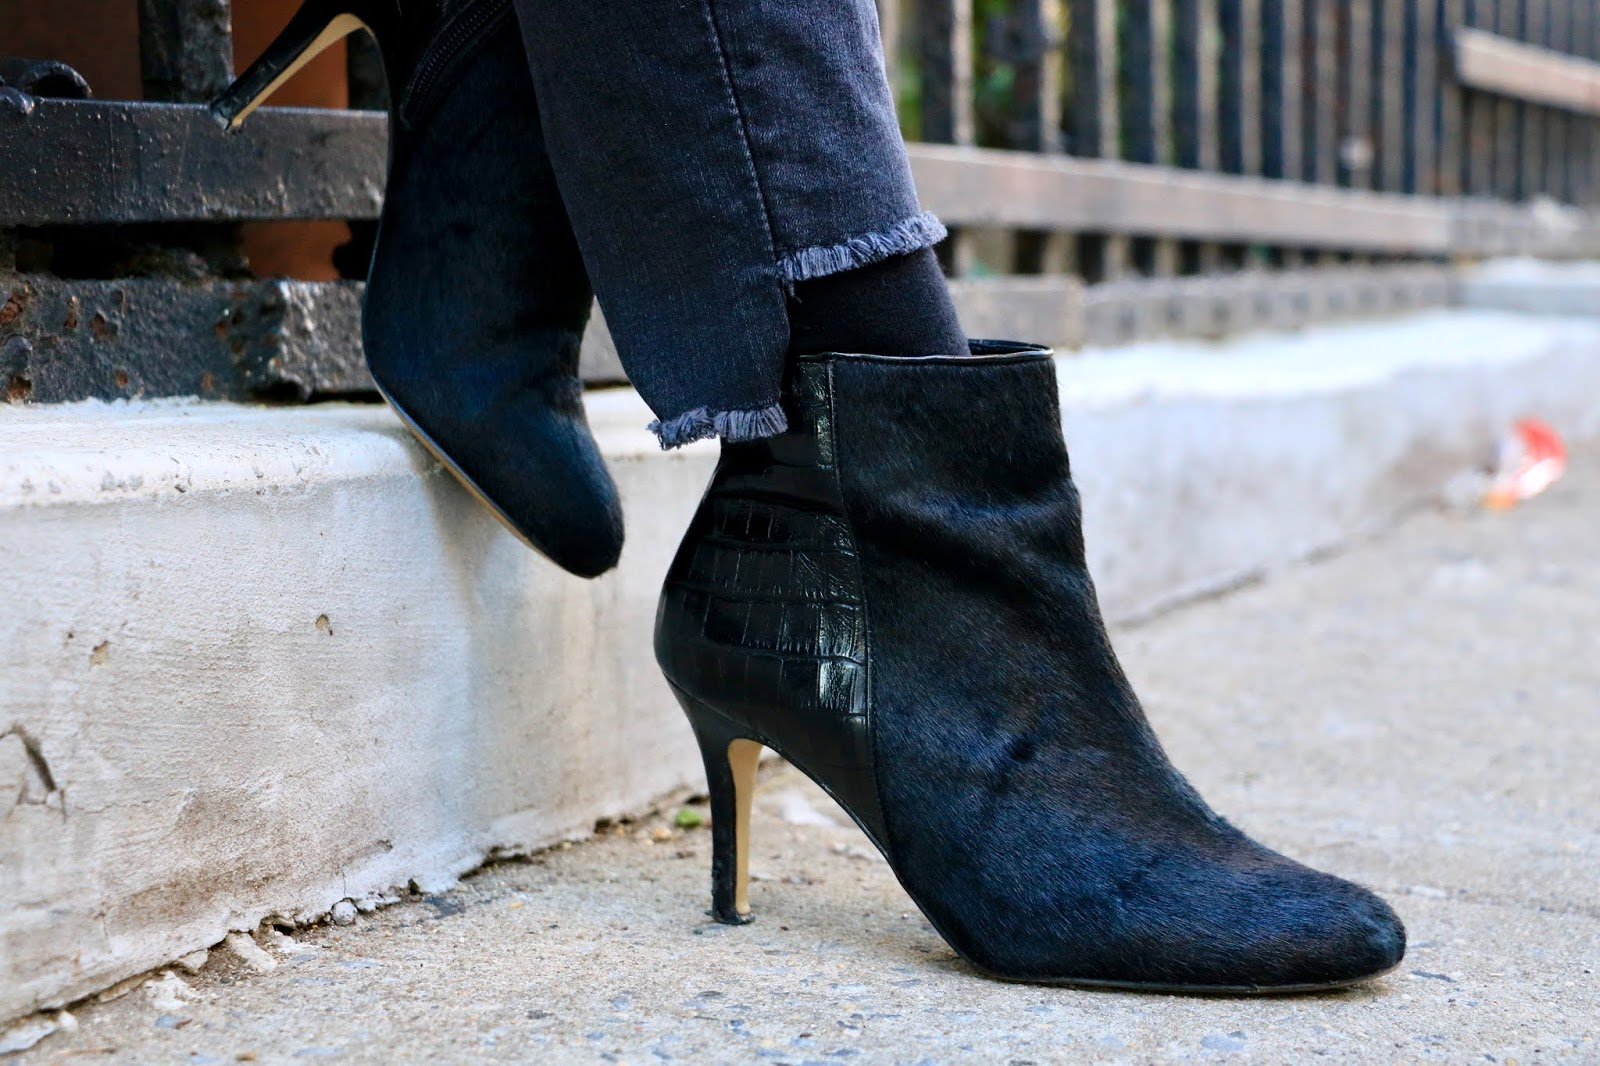 Nyc fashion blogger Kathleen Harper wearing leather and calf hair black boots from Ann Taylor.